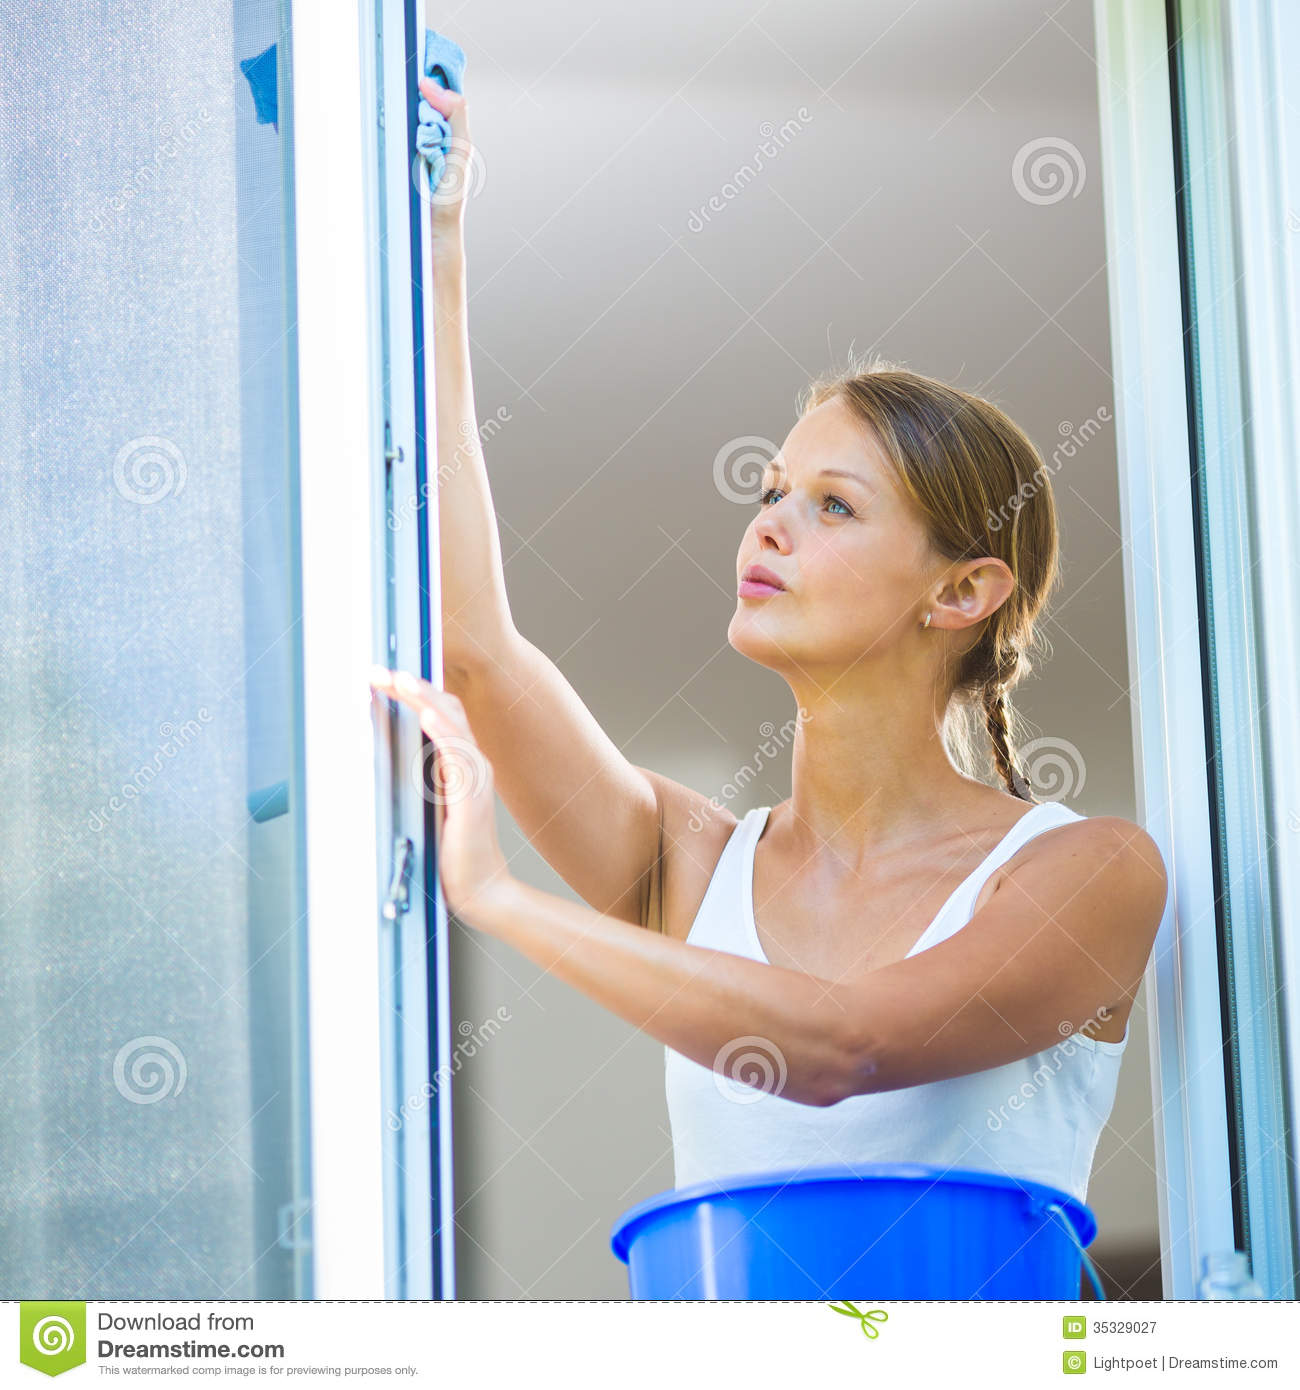 Washing House Windows 28 Images Cleaning Windows With Vinegar Without Streaks Woman Washing